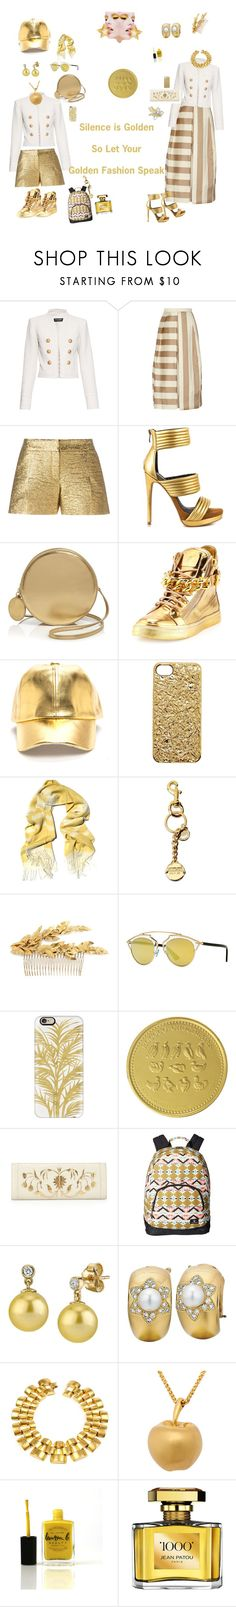 """""""Golden Times"""" by harts2raines ❤ liked on Polyvore featuring Balmain, TIBI, Lanvin, Mia Limited Edition, Boutique Moschino, Giuseppe Zanotti, Marc by Marc Jacobs, Ketzali, Moschino and J.Crew"""